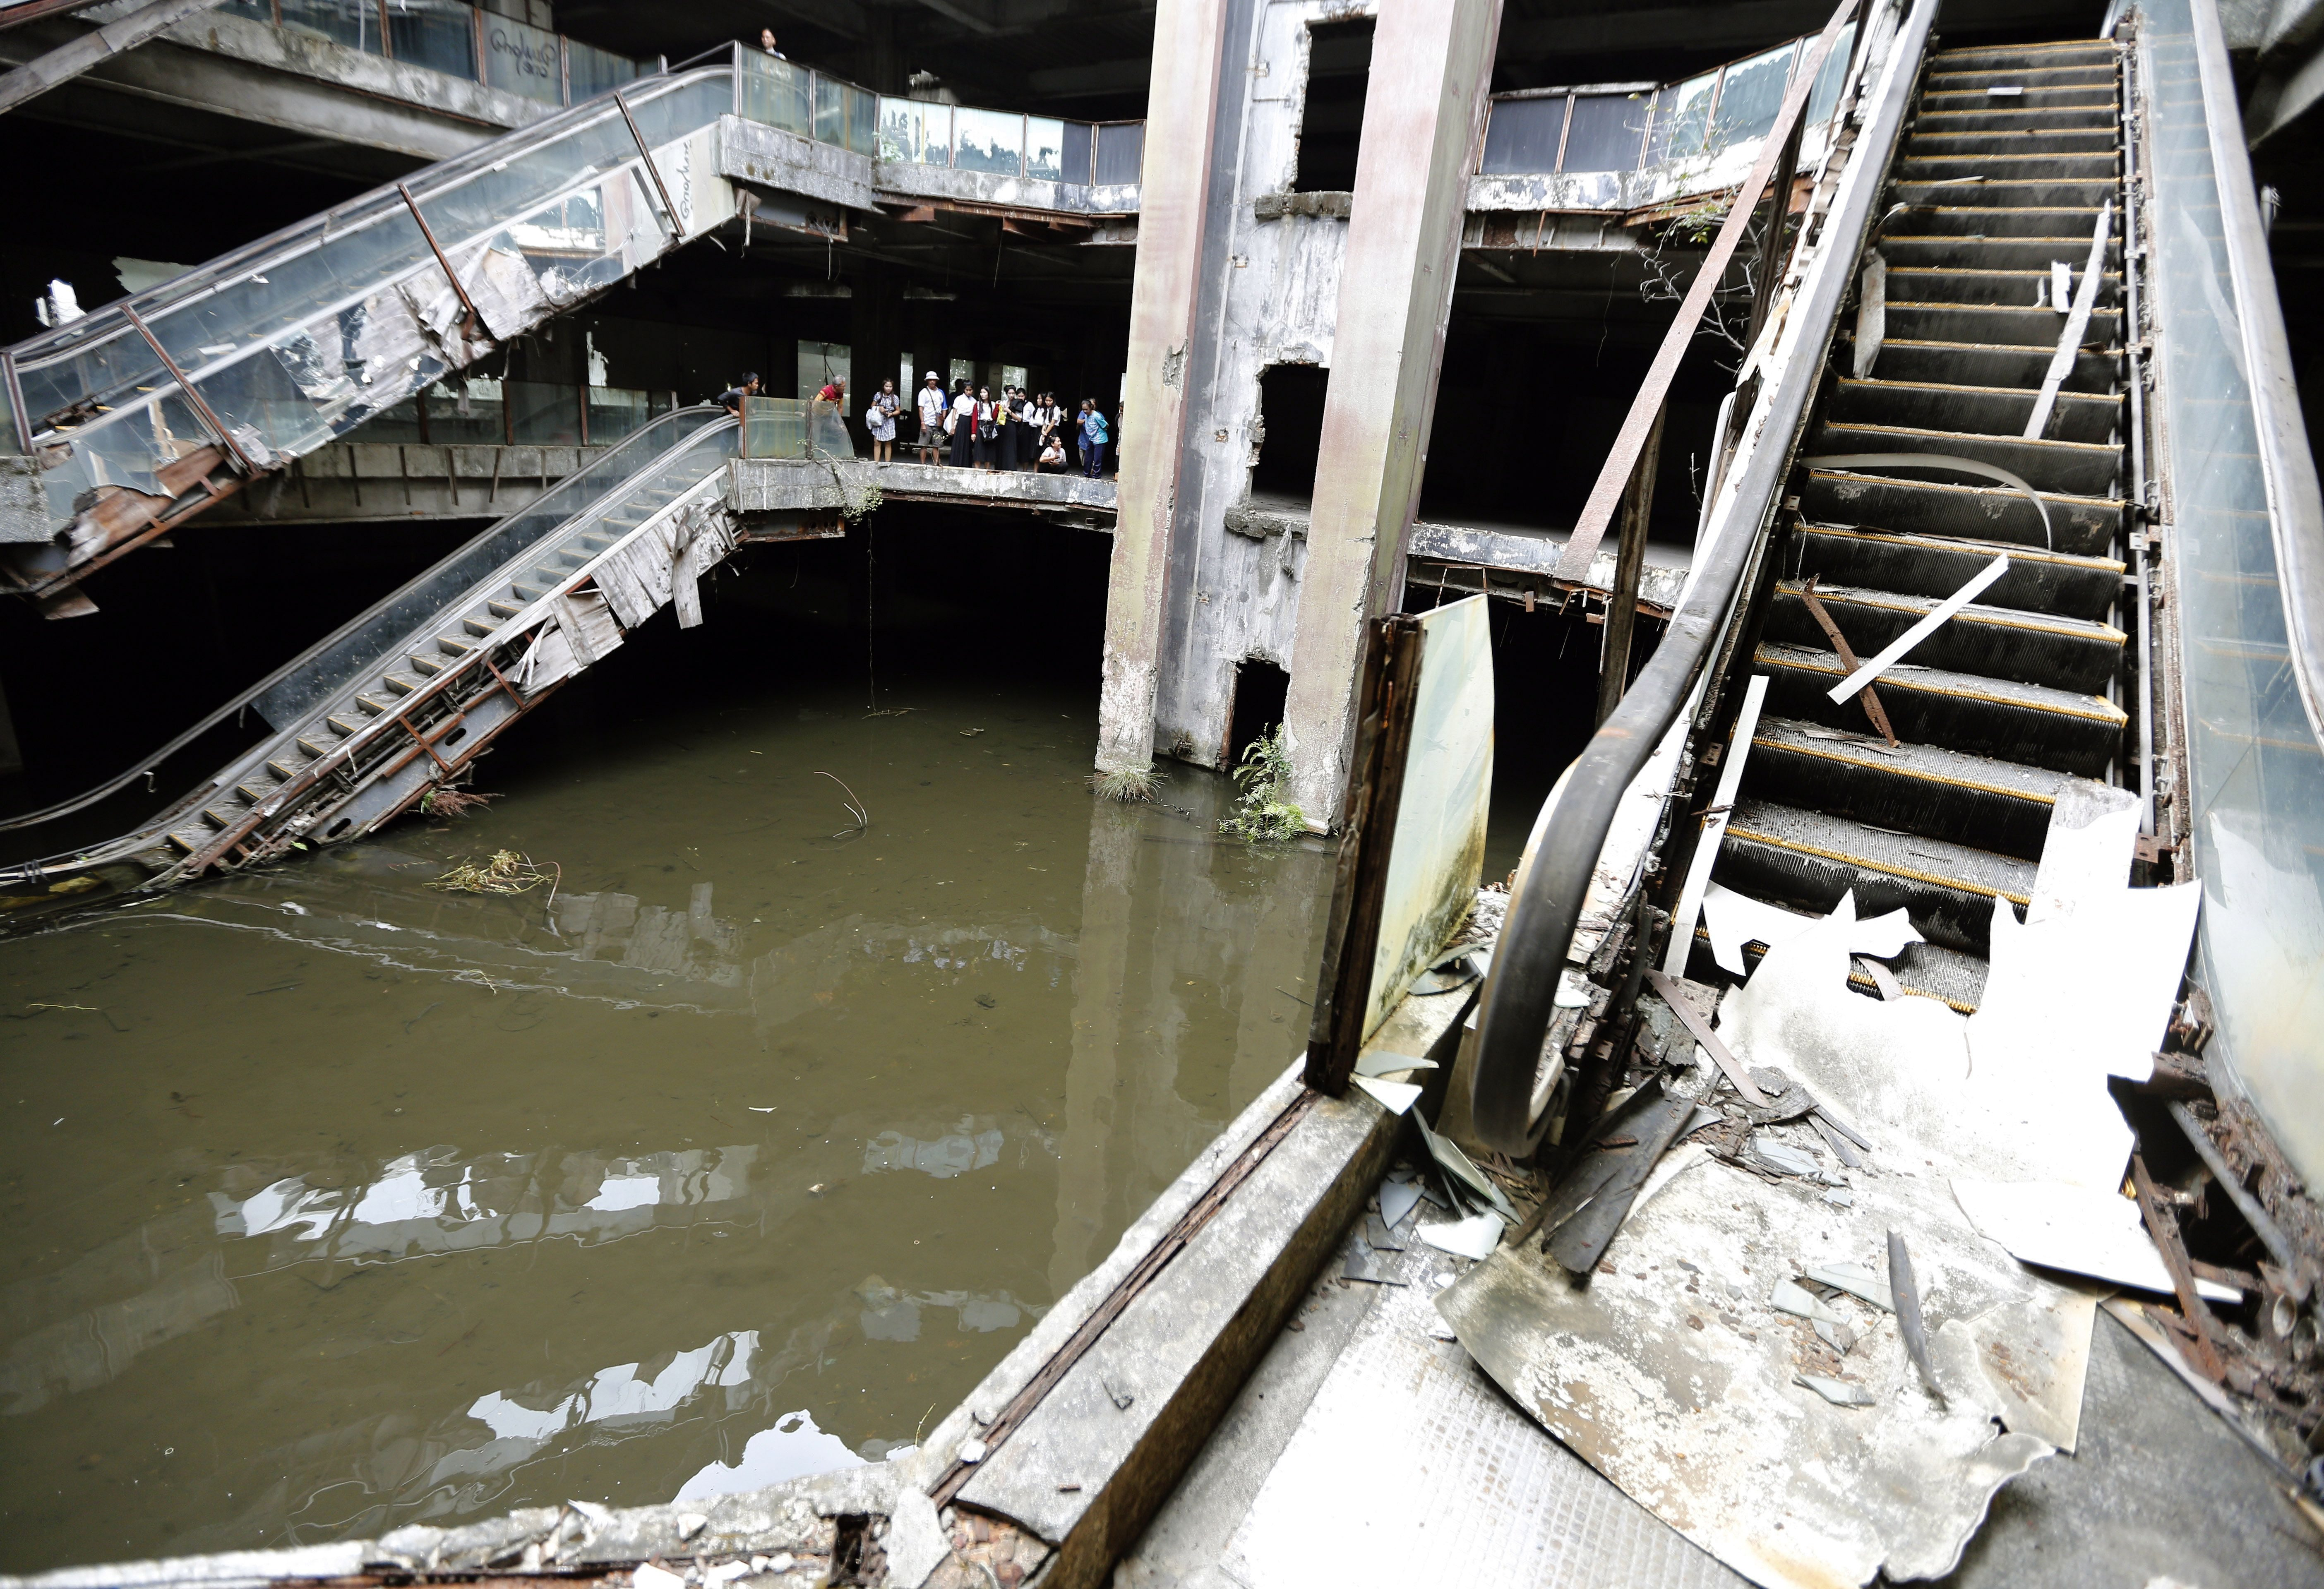 Mandatory Credit: Photo by Narong Sangnak/EPA/Shutterstock (7966551i) Thai Visitors Look For Fish in the Basement of an Abandoned Mall in Bangkok Thailand 13 January 2015 the Officers Are Moving Thousands of Fish Including Tilapia Iridescent Shark and Carp From a Pond of the New World Mall Before Its Demolition the Mall was Closed in 1997 After It was Found to Have Breached Building Regulations in Bangkok and It Has Become Home to Fish After It was Slowly Flooded by Rain Water Thailand Bangkok Thailand Fishing - Jan 2015